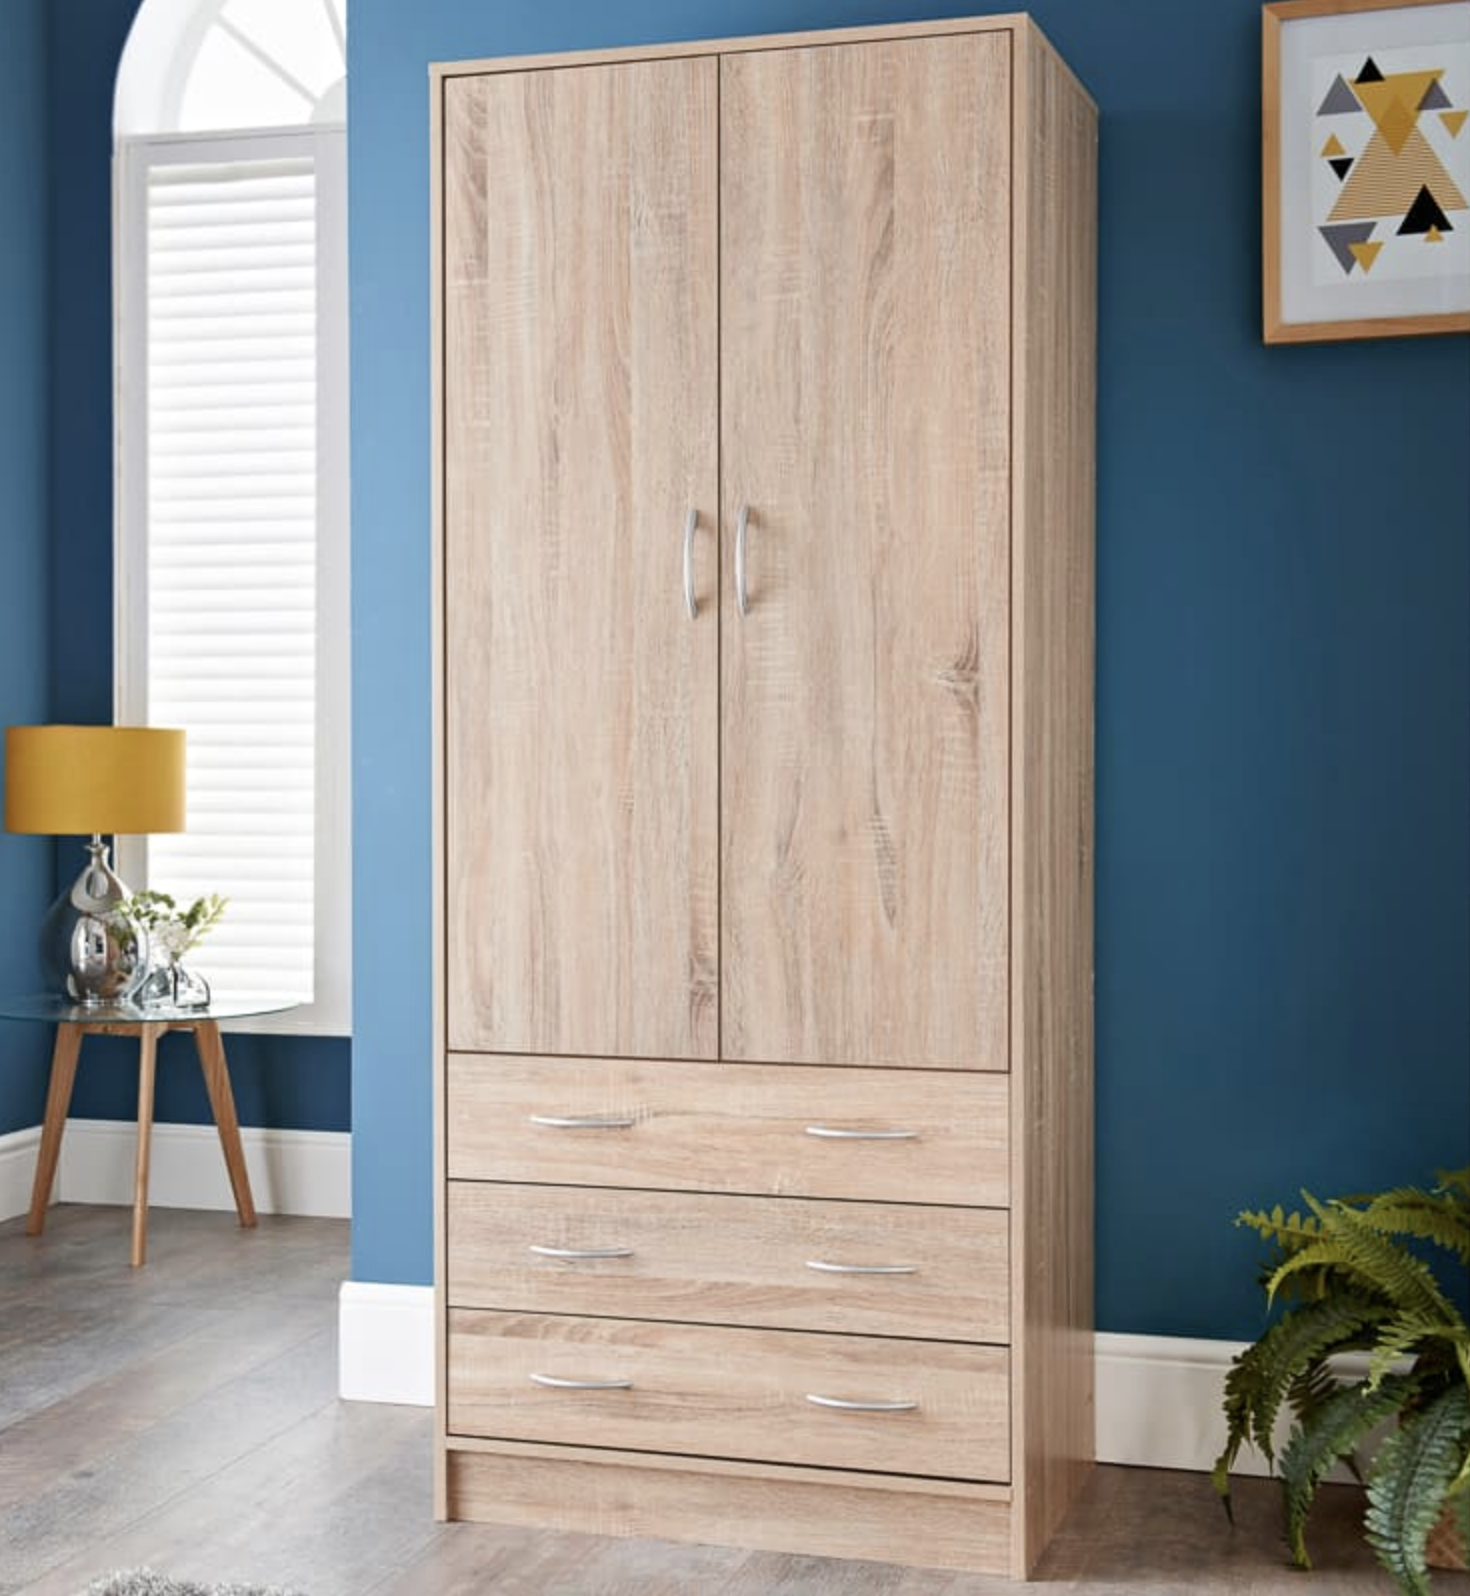 b&m stores furniture wardrobe